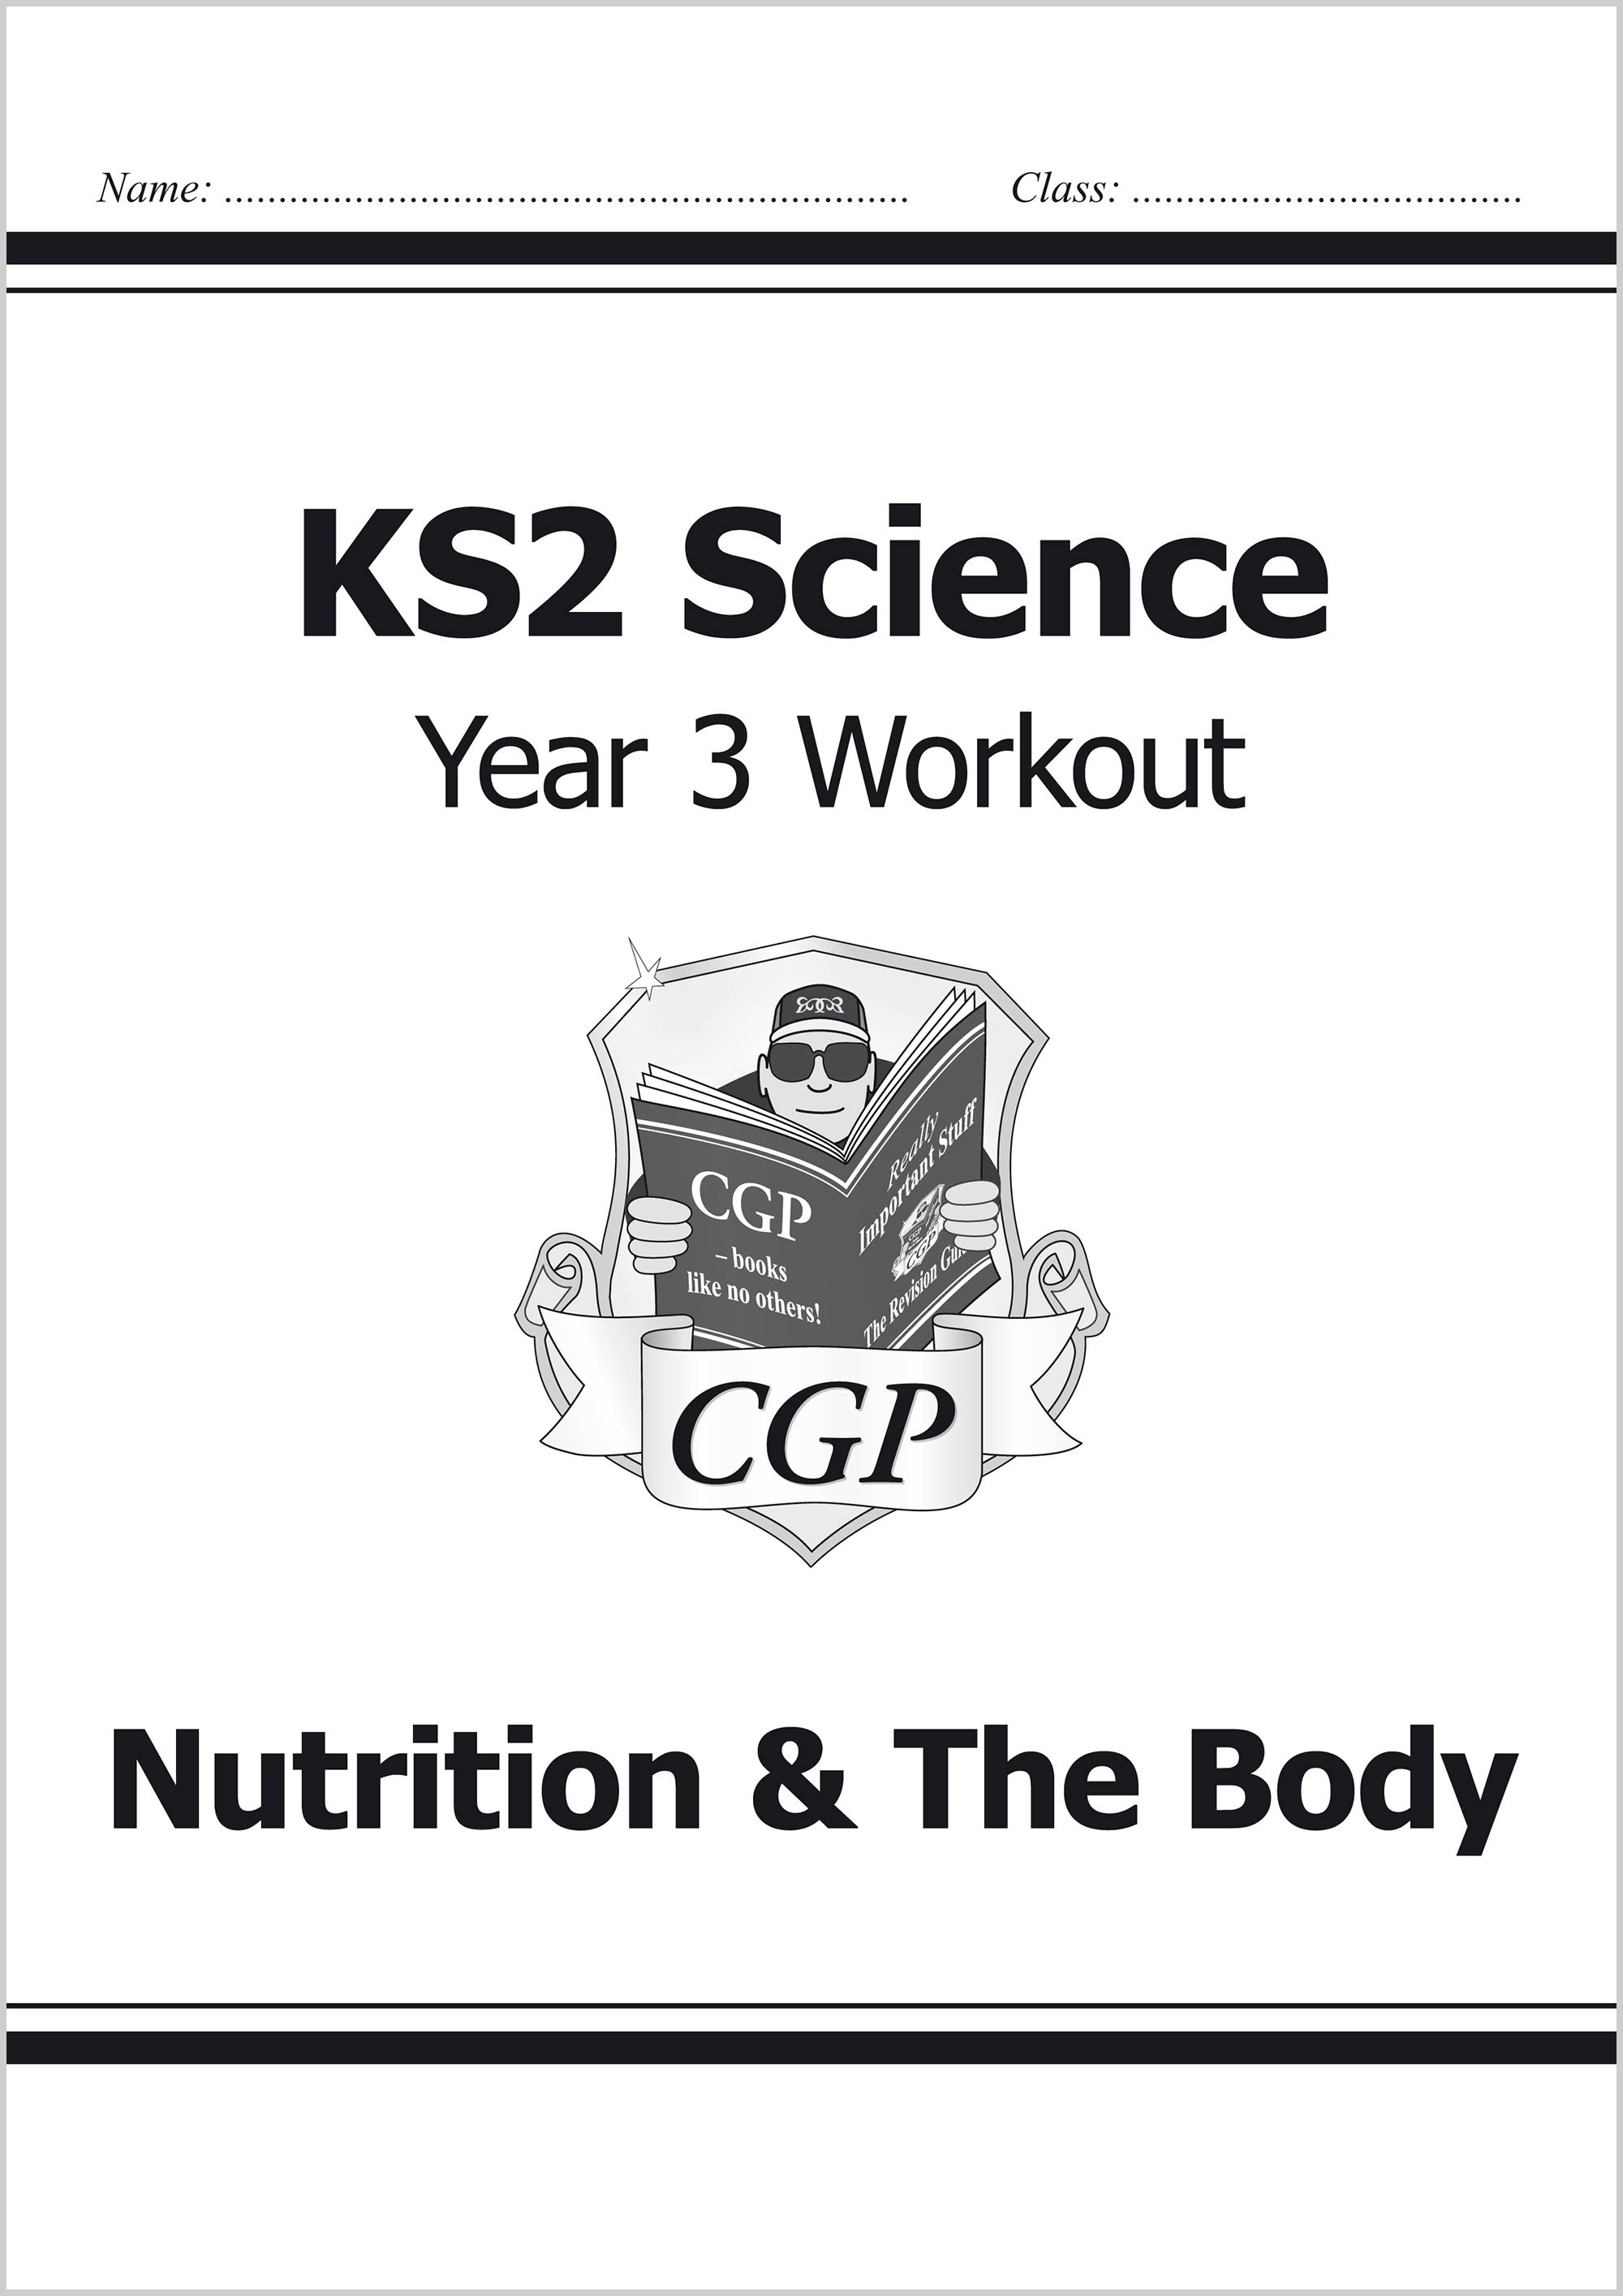 S3B22 - KS2 Science Year Three Workout: Nutrition & The Body